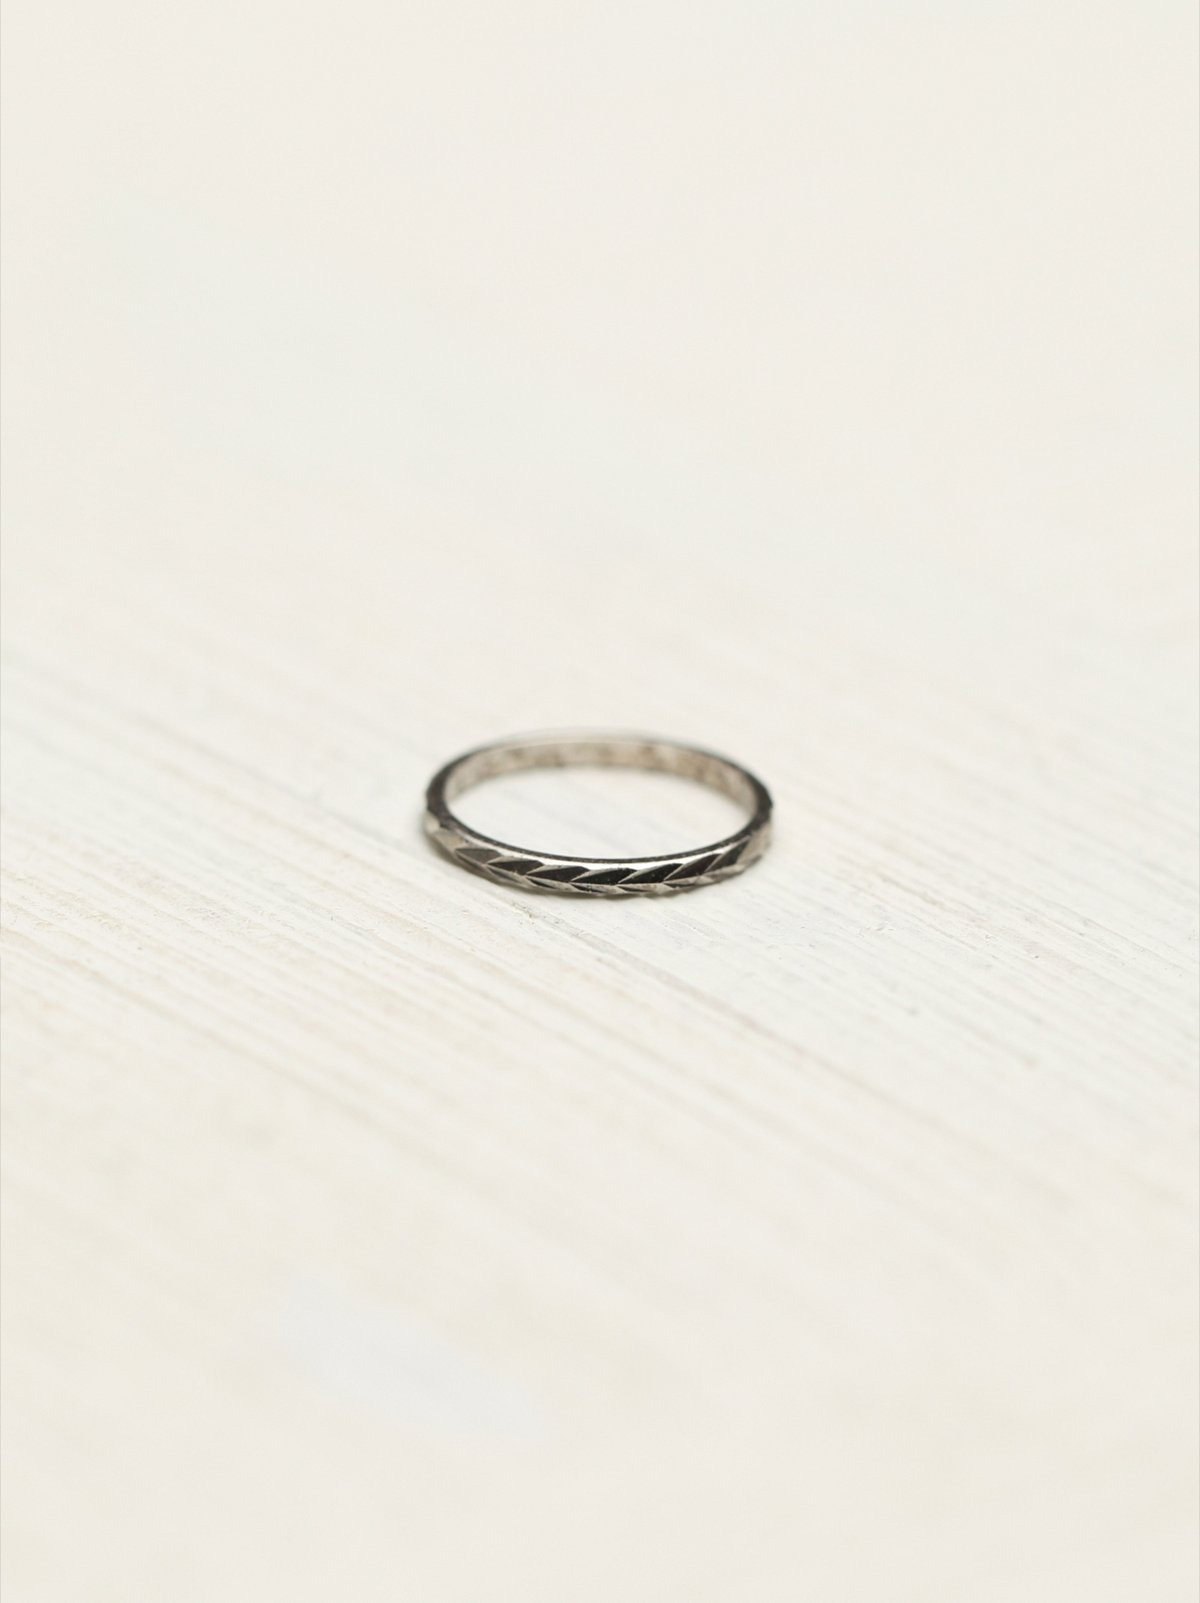 Etched Skinny Ring